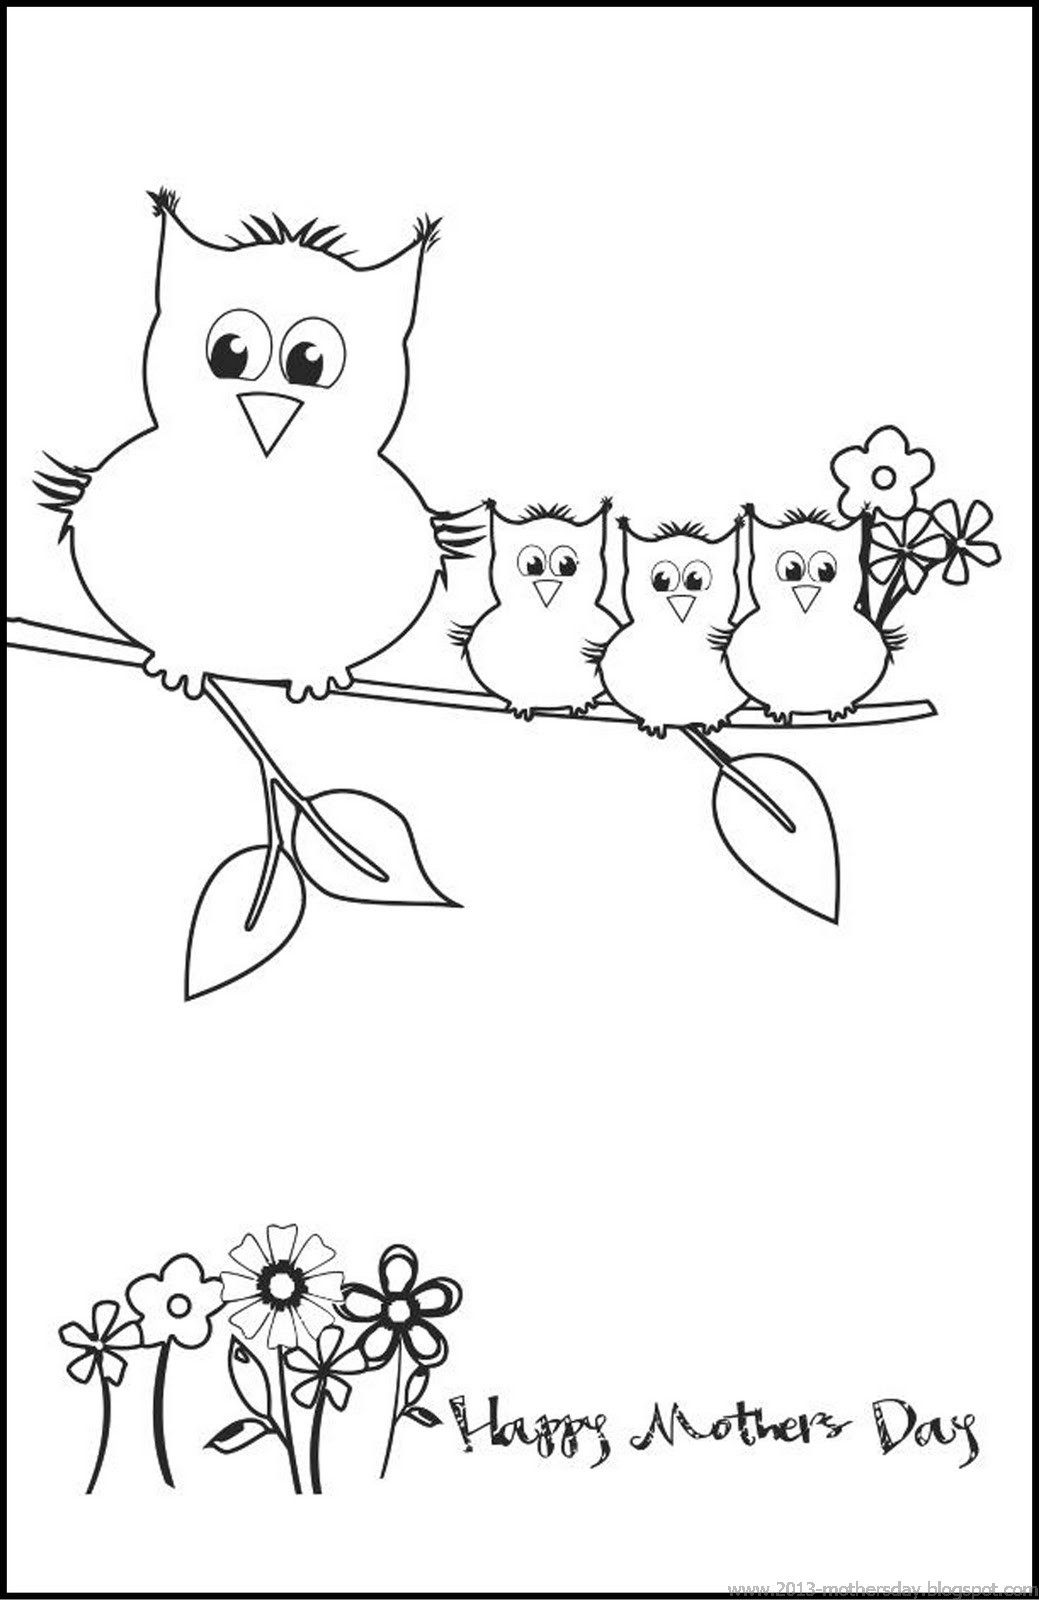 Free mothers day coloring pages for kids ~ Wallpaper Free Download: printable mothers day card ...